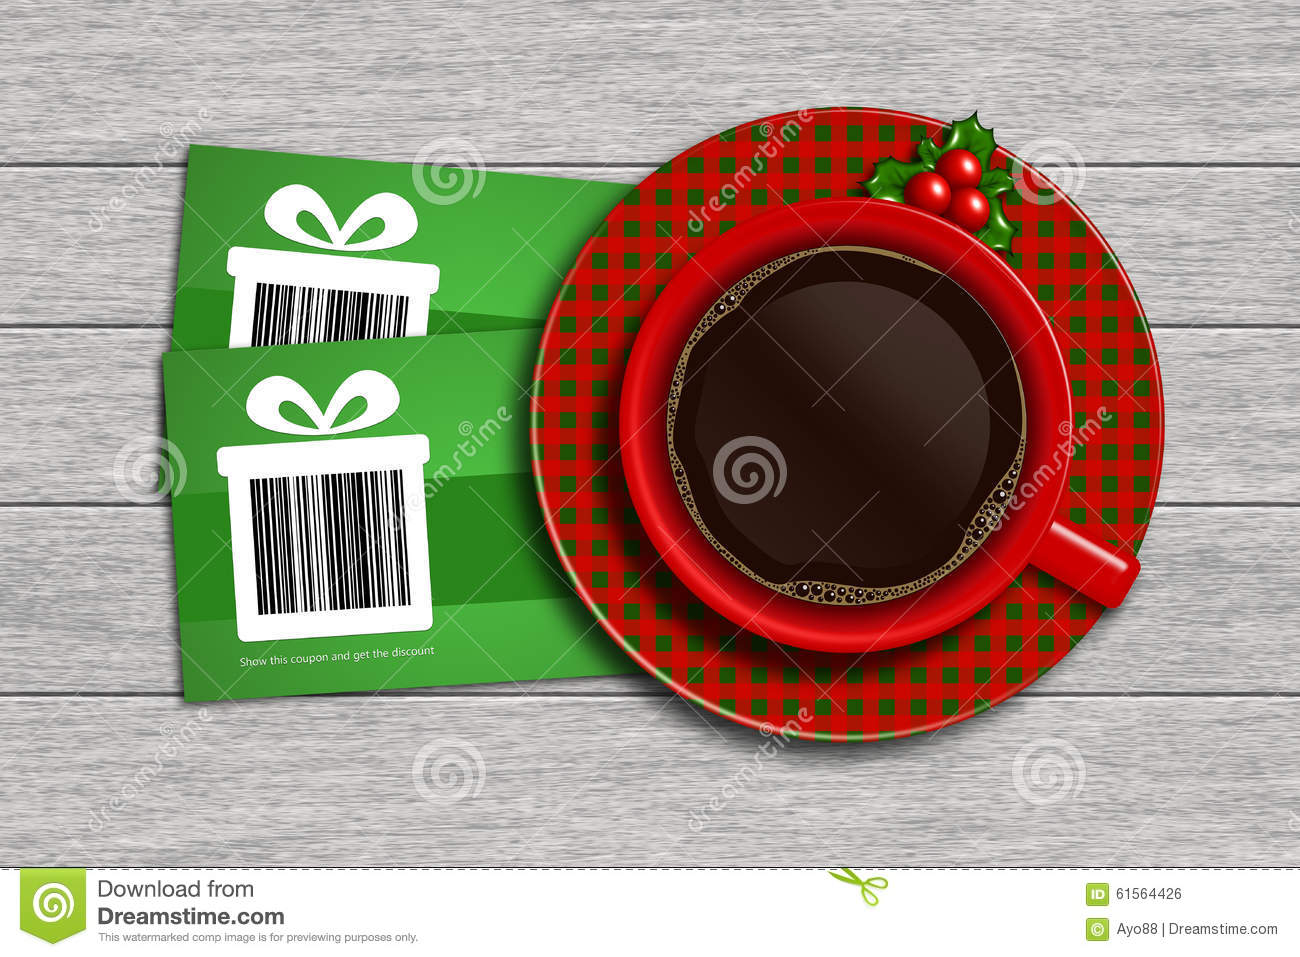 christmas discount coupons barcode and coffee on wooden des christmas discount coupons barcode and coffee on wooden des